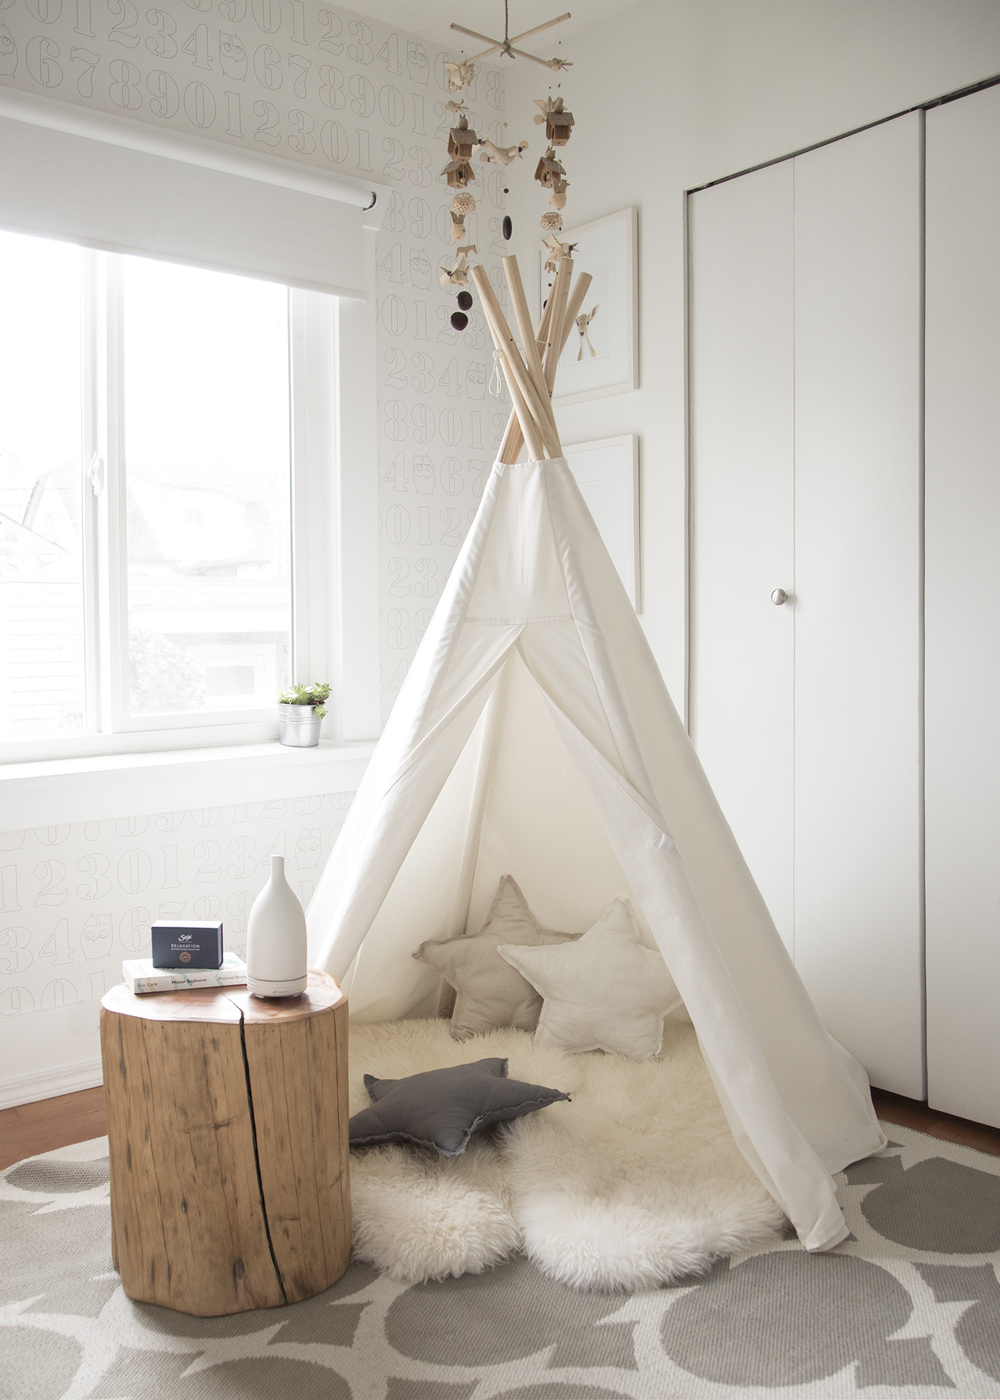 a teepee in playroom with sajewellness nebulizer